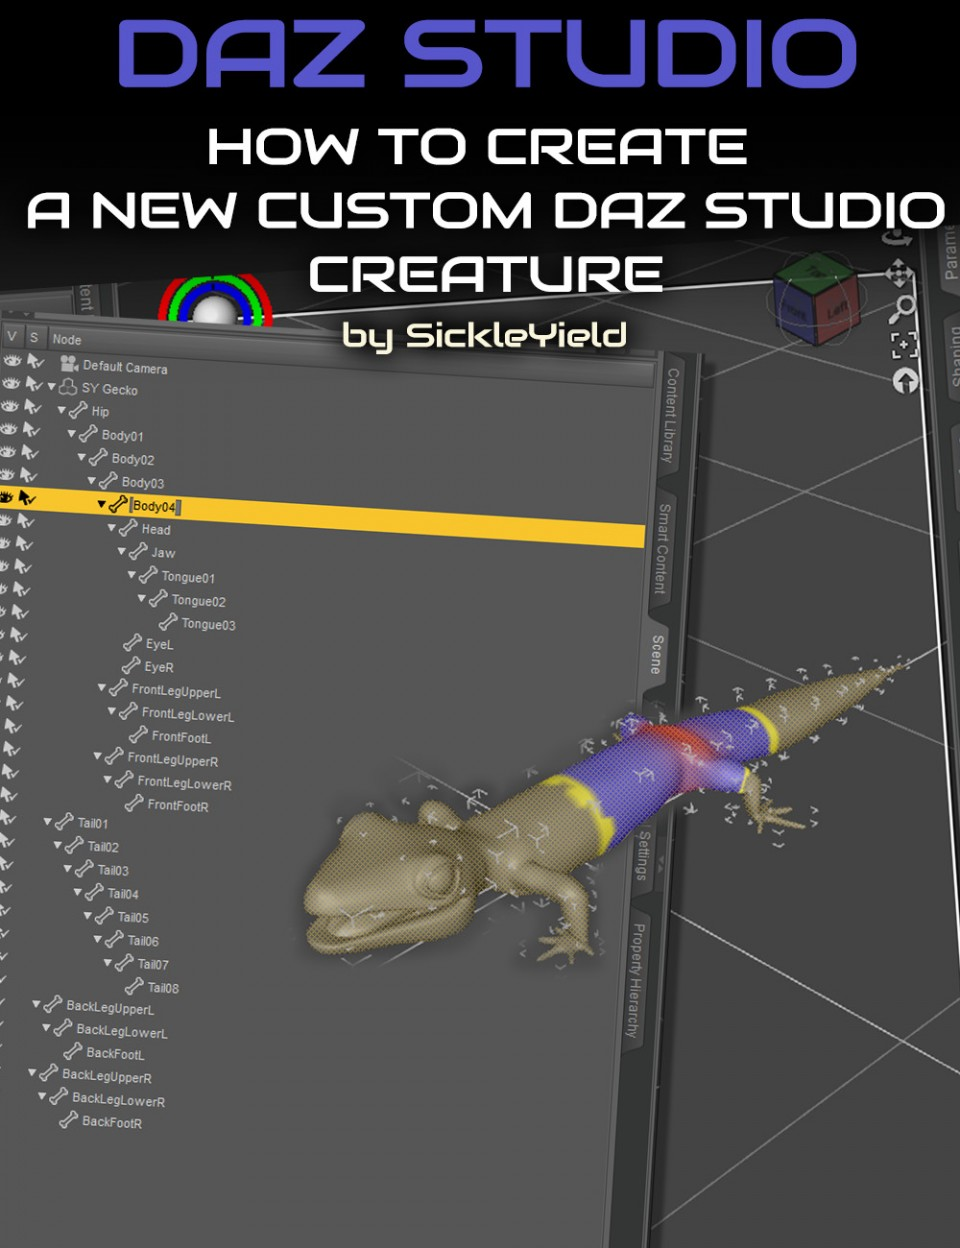 How to Create a New Daz Studio Custom Creature